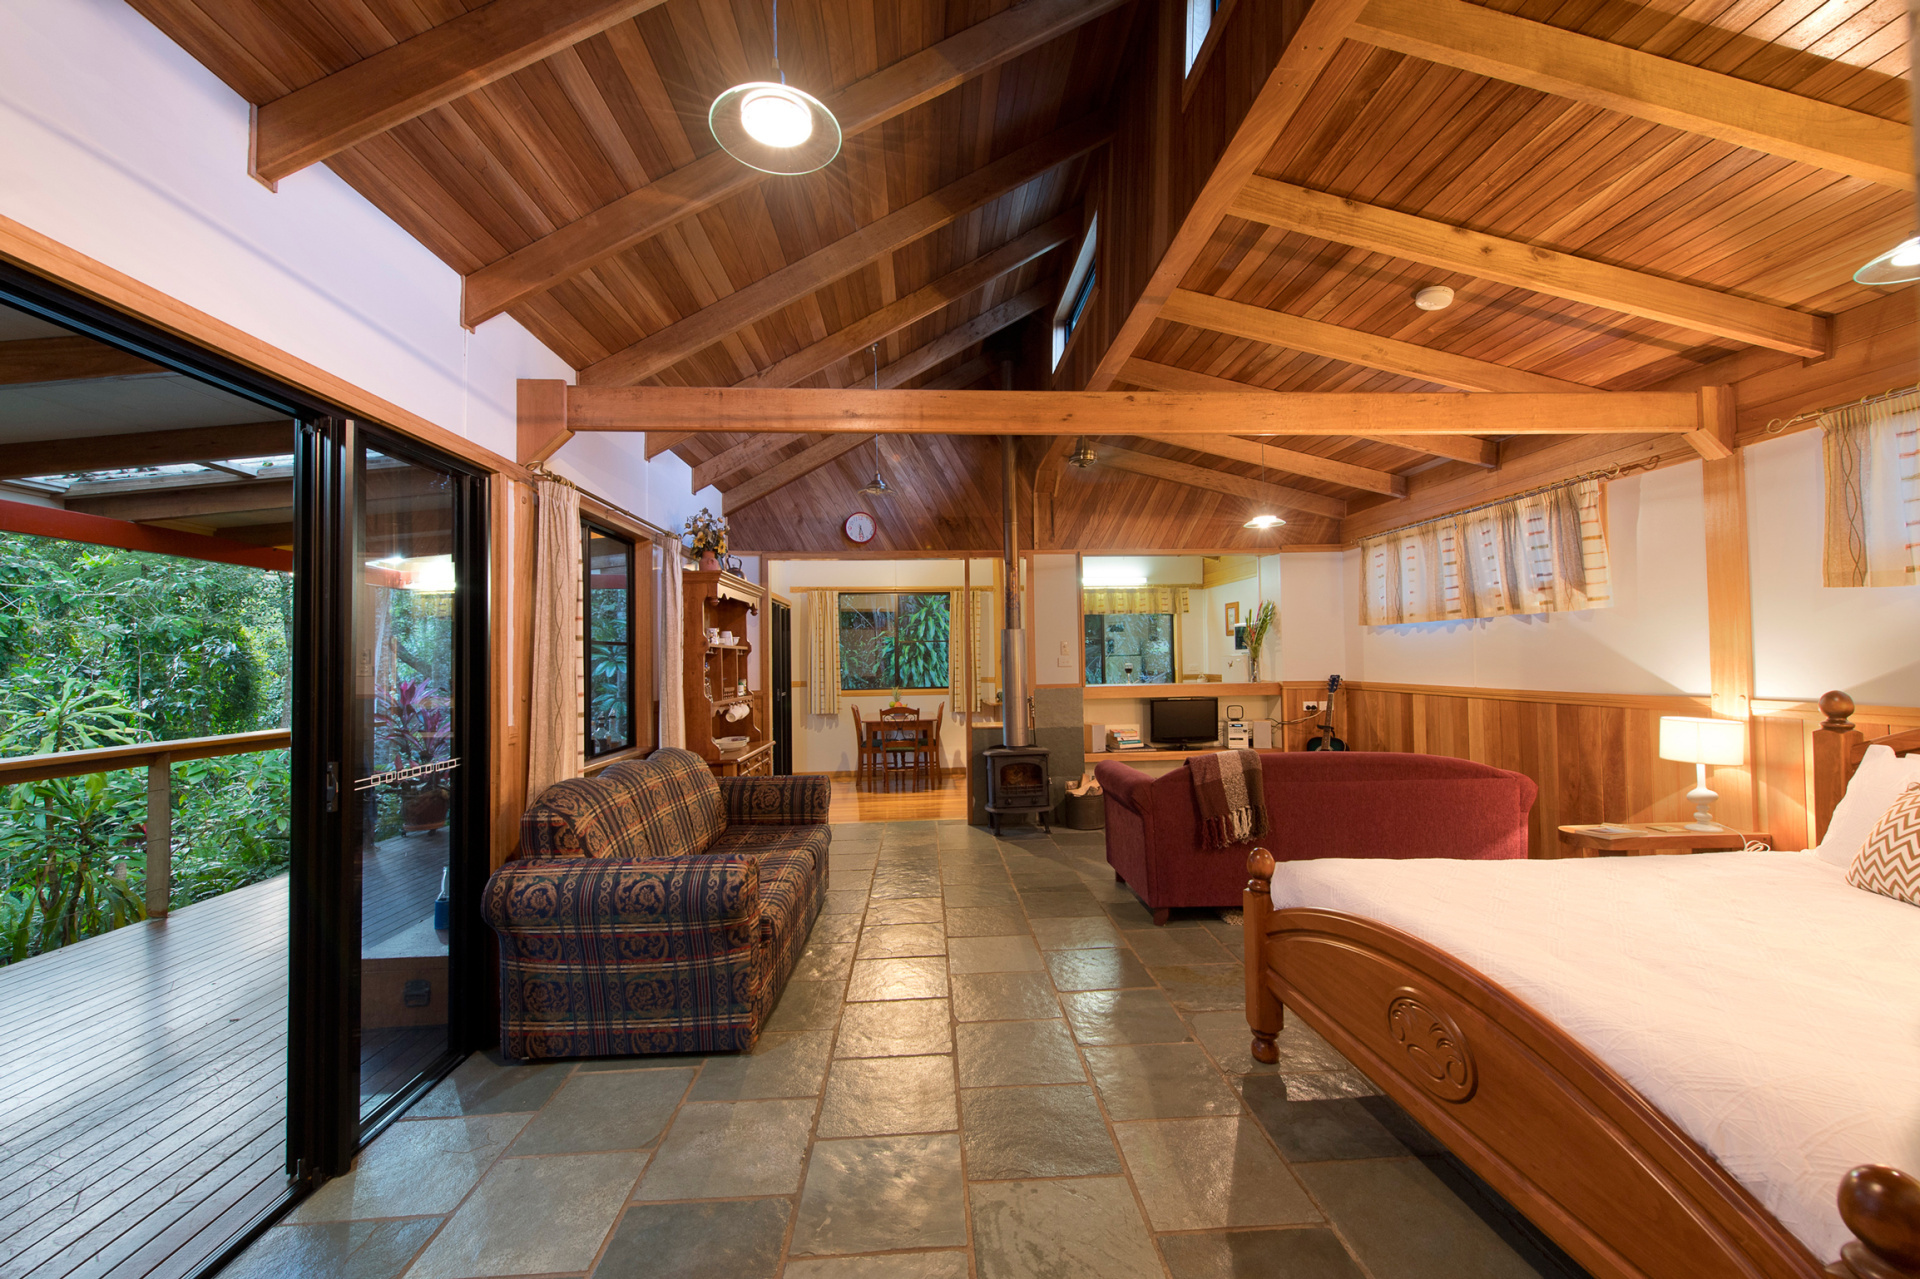 Lake Barrine Cottage Bed And Breakfast